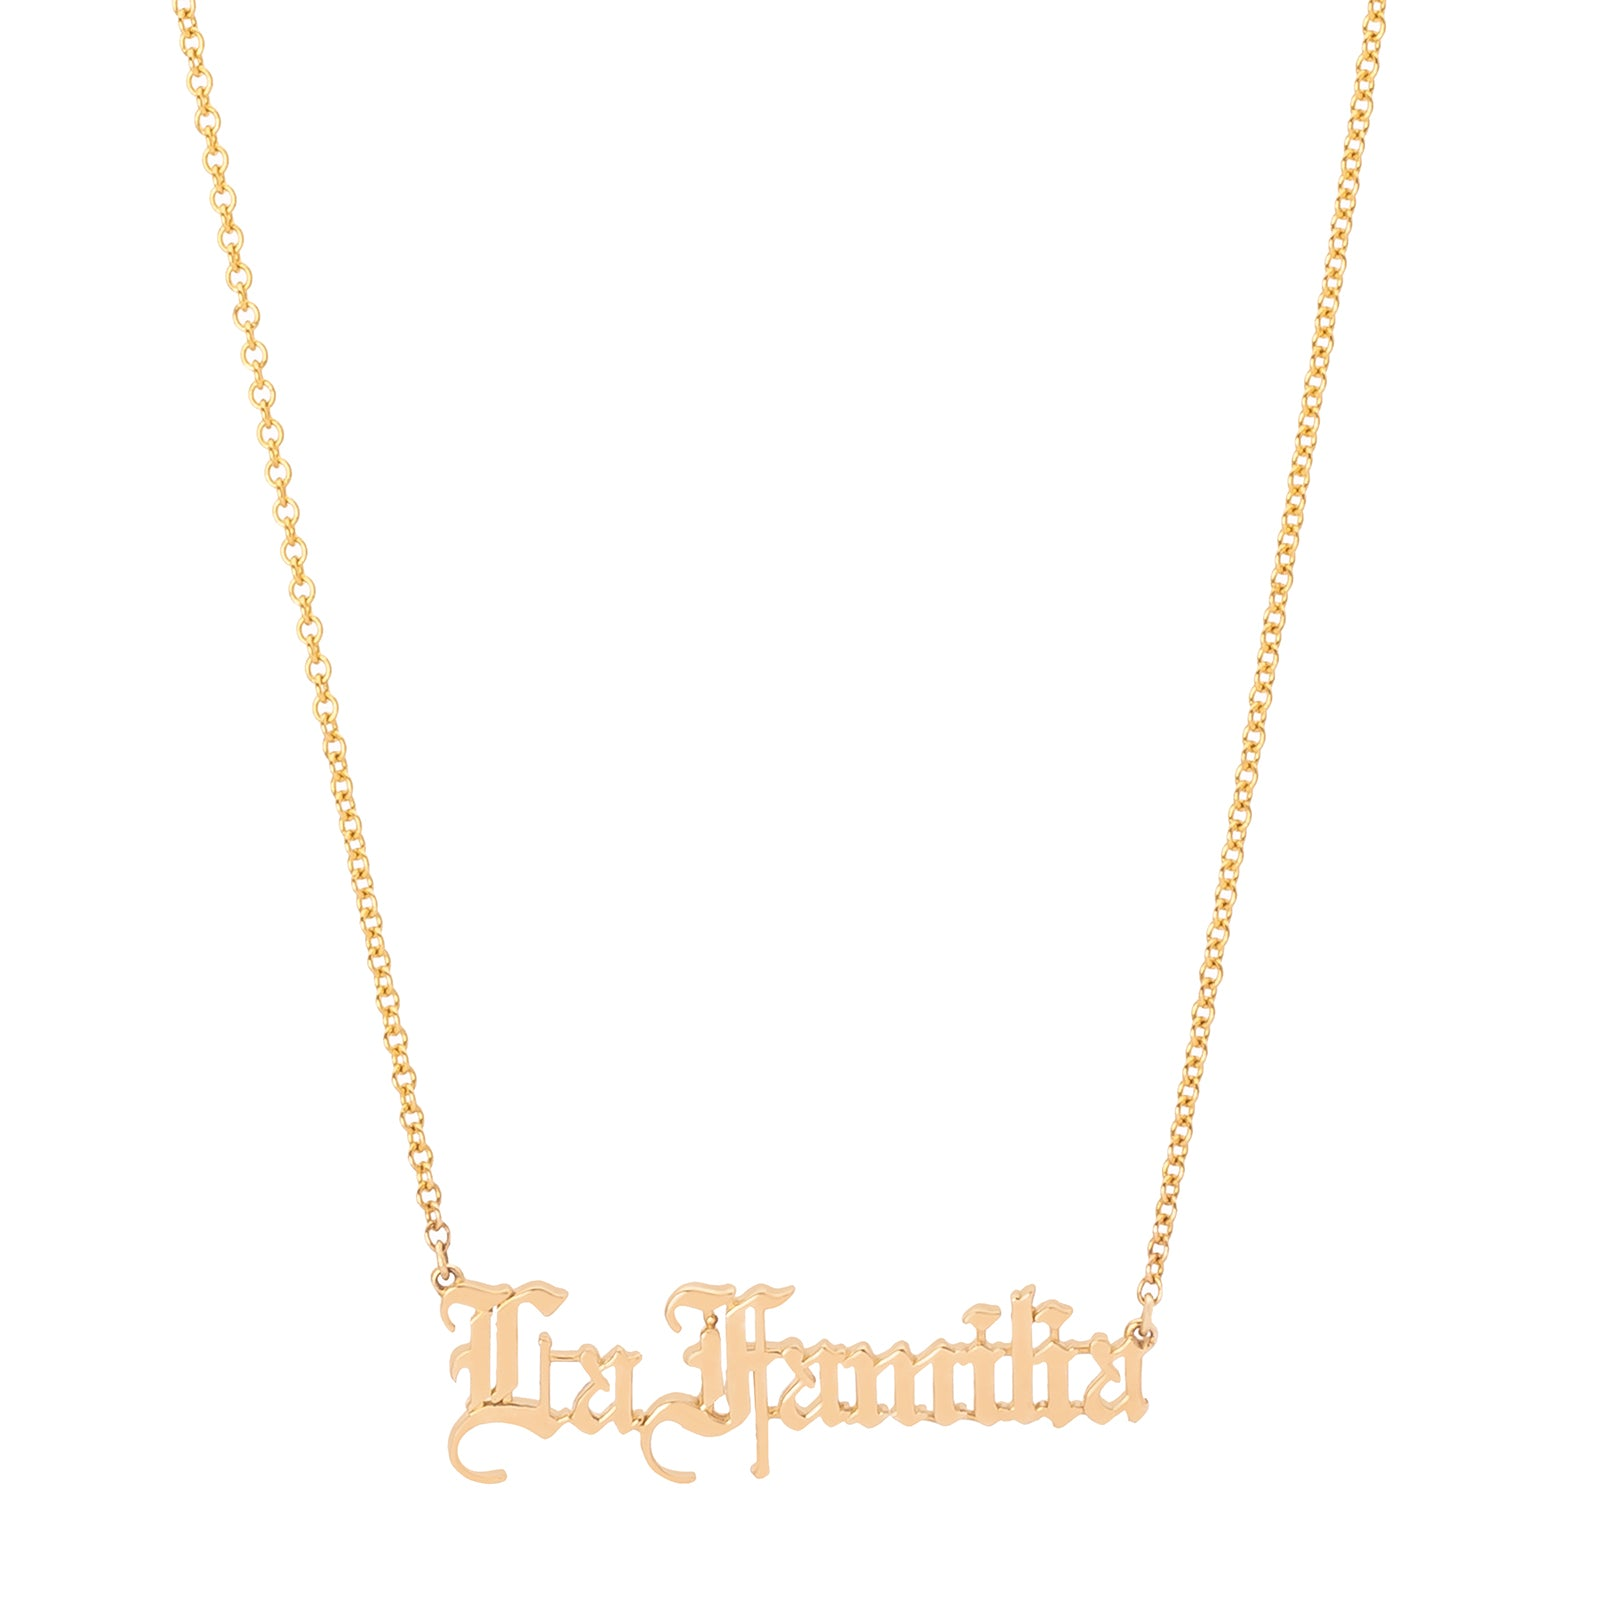 Established Jewelry La Familia Necklace - Necklaces - Broken English Jewelry